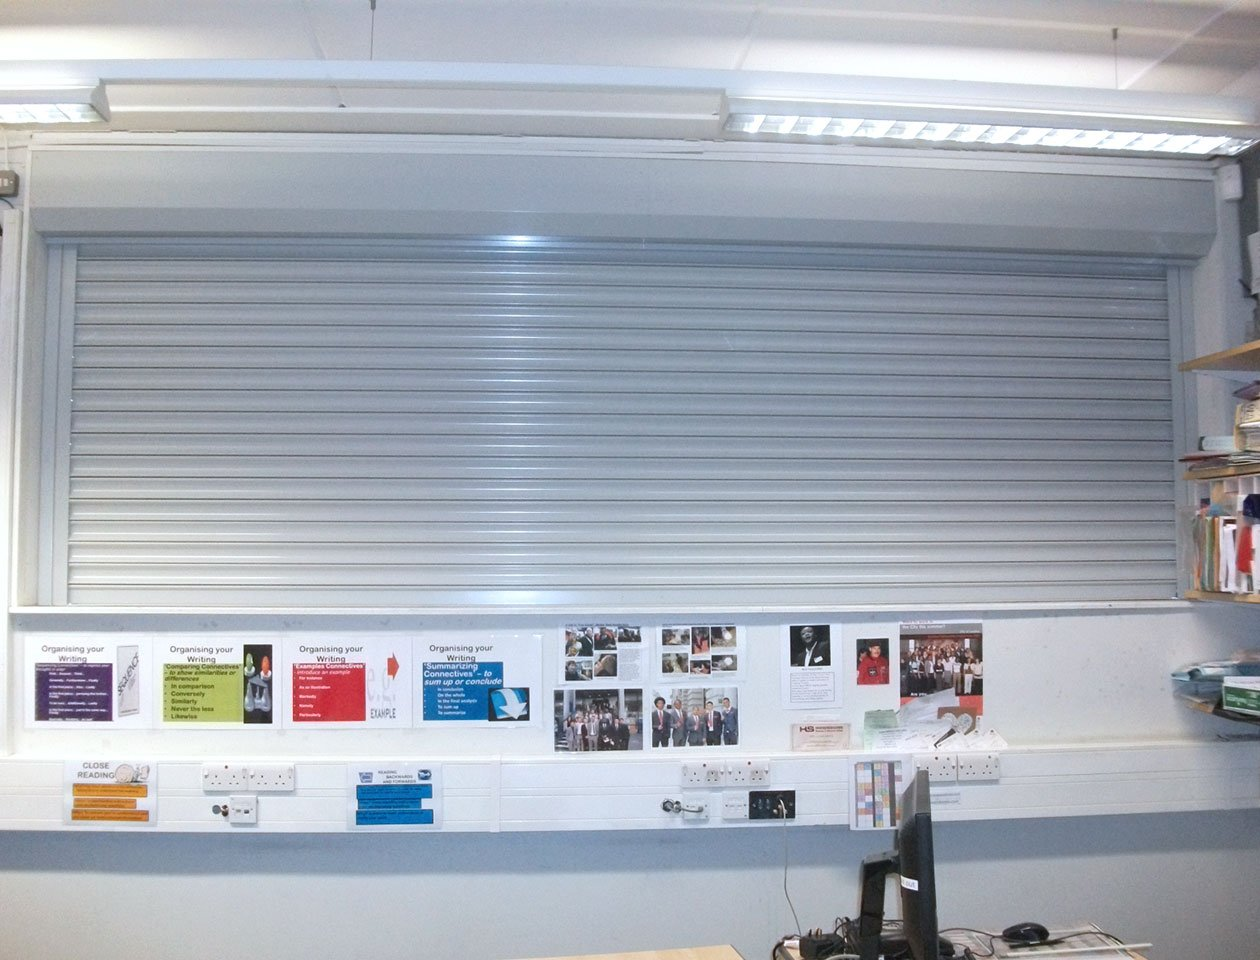 Fire shutter with silver finish in use in hallway